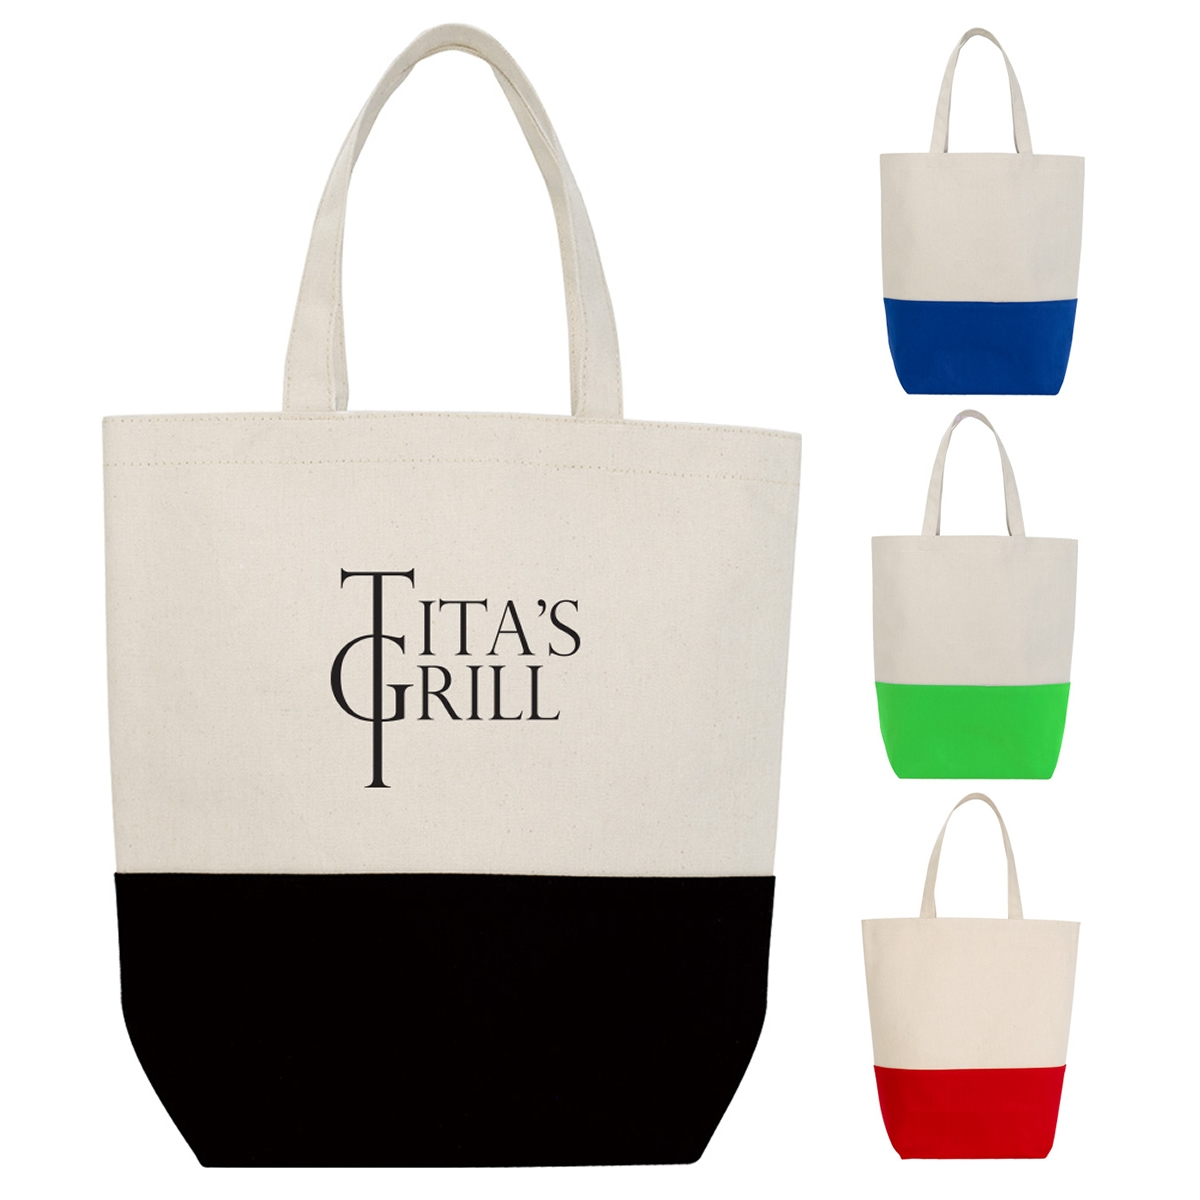 ee27c0063 Promotional Tote-And-Go Canvas Tote Bag   Customized Tote-And-Go Canvas  Tote Bag   Promotional Canvas Tote Bags